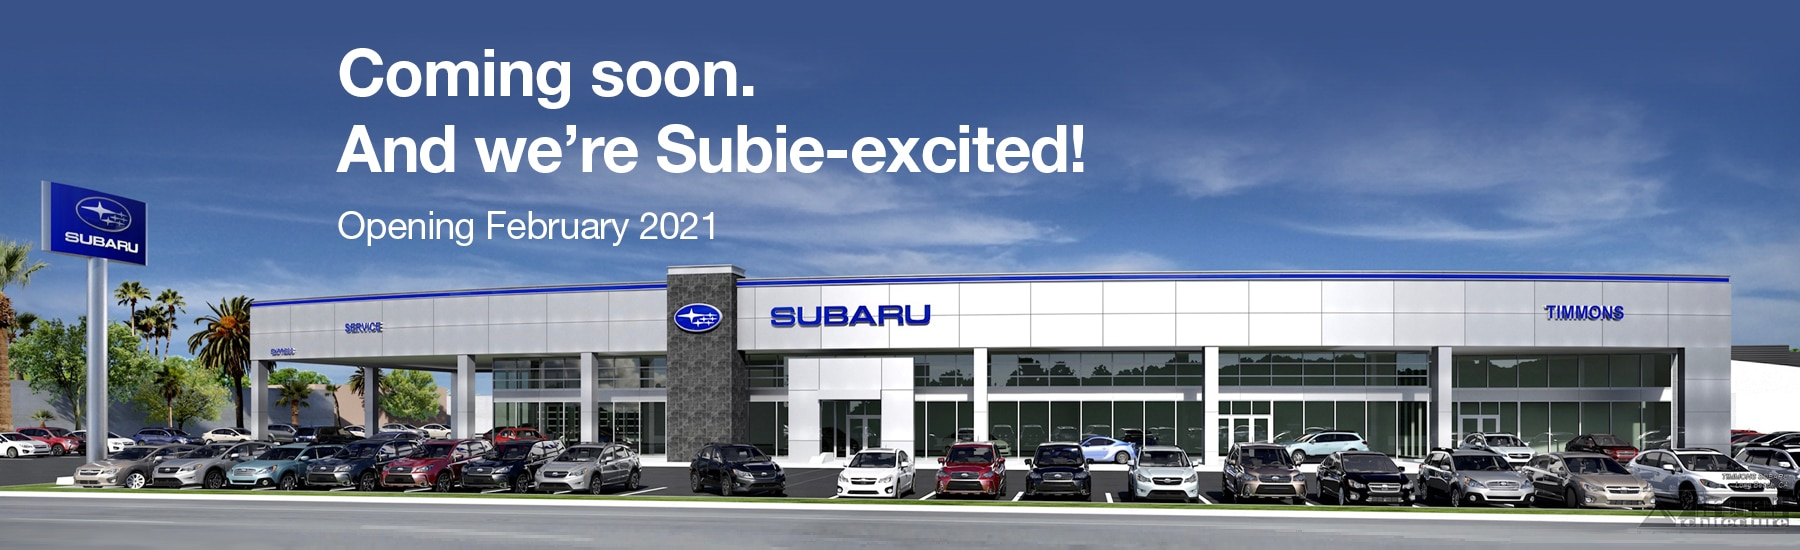 Timmons Subaru is building a new dealership. Opening February 2021